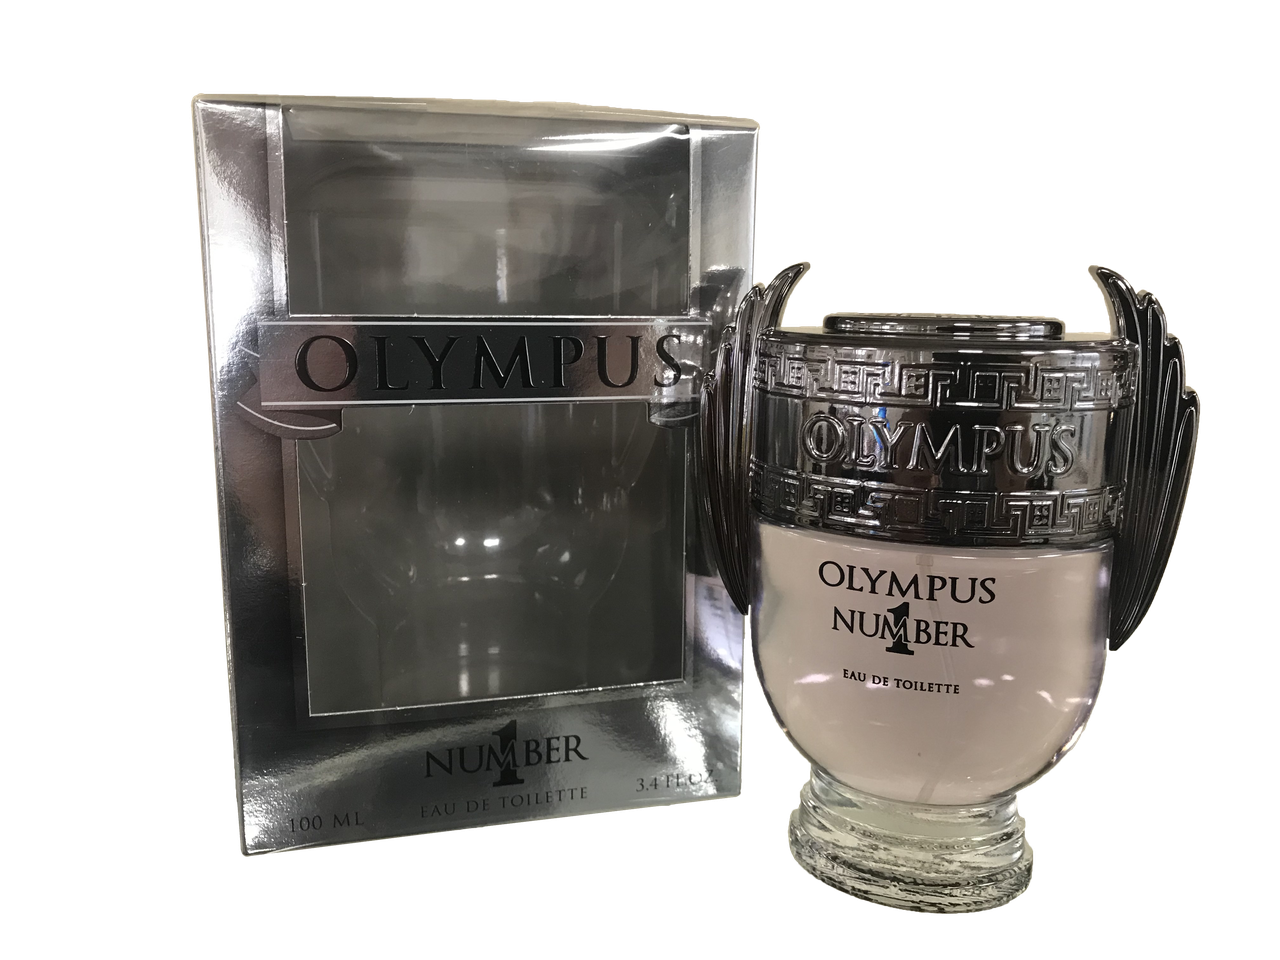 Olympus Number 1 Art Parfum